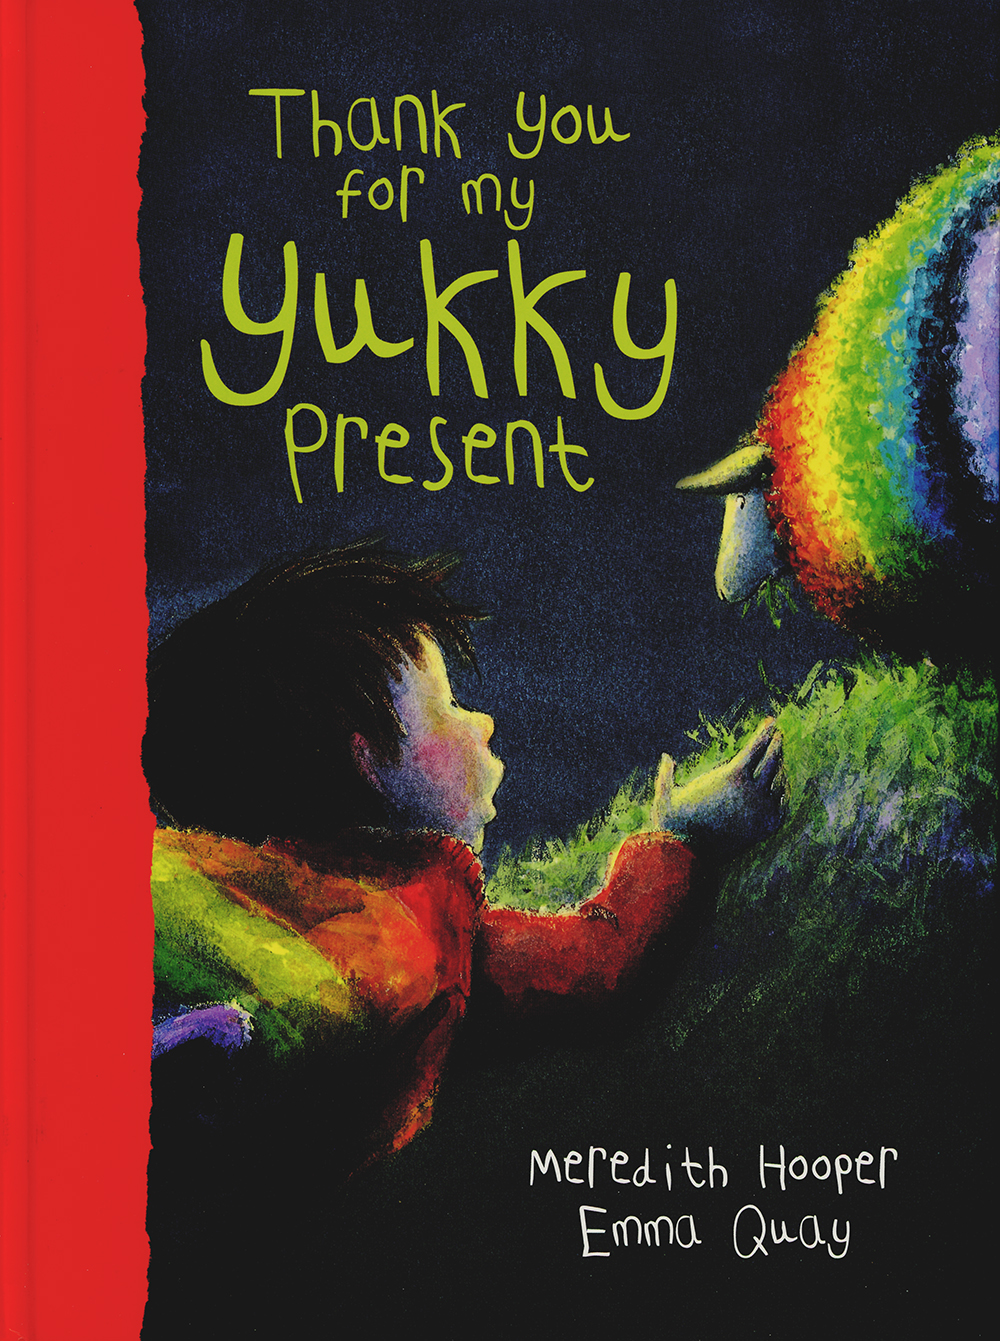 Cover of THANK YOU FOR MY YUKKY PRESENT by Emma Quay and Meredith Hooper (Hodder Headline)